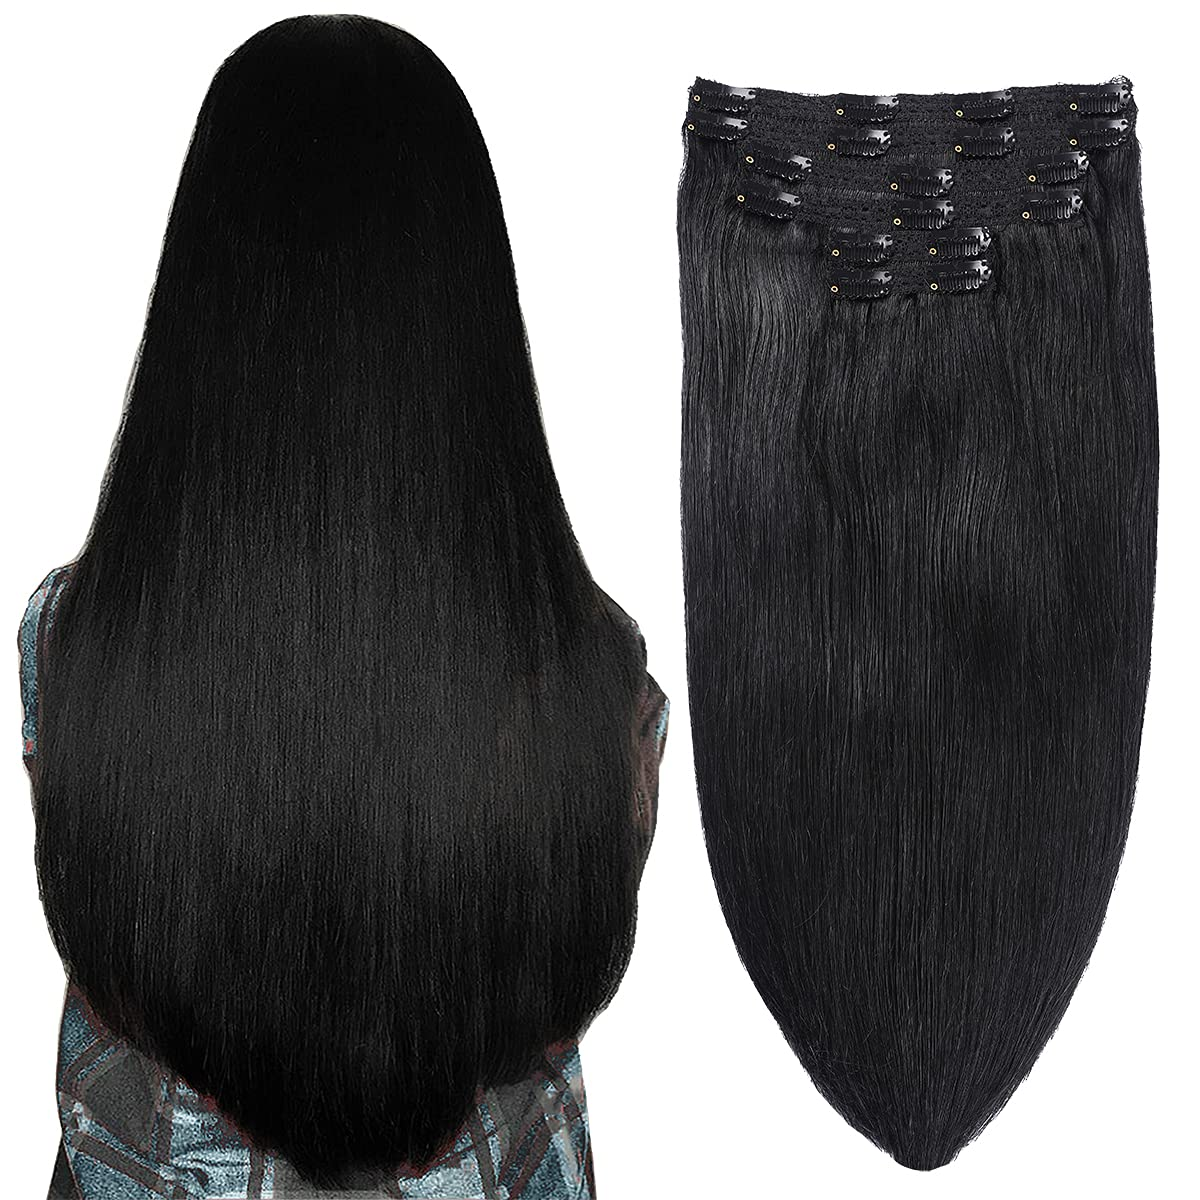 SURNEL Clip in Human Hair Exten Extensions Ranking TOP13 14inch 6pcs Recommended 100g